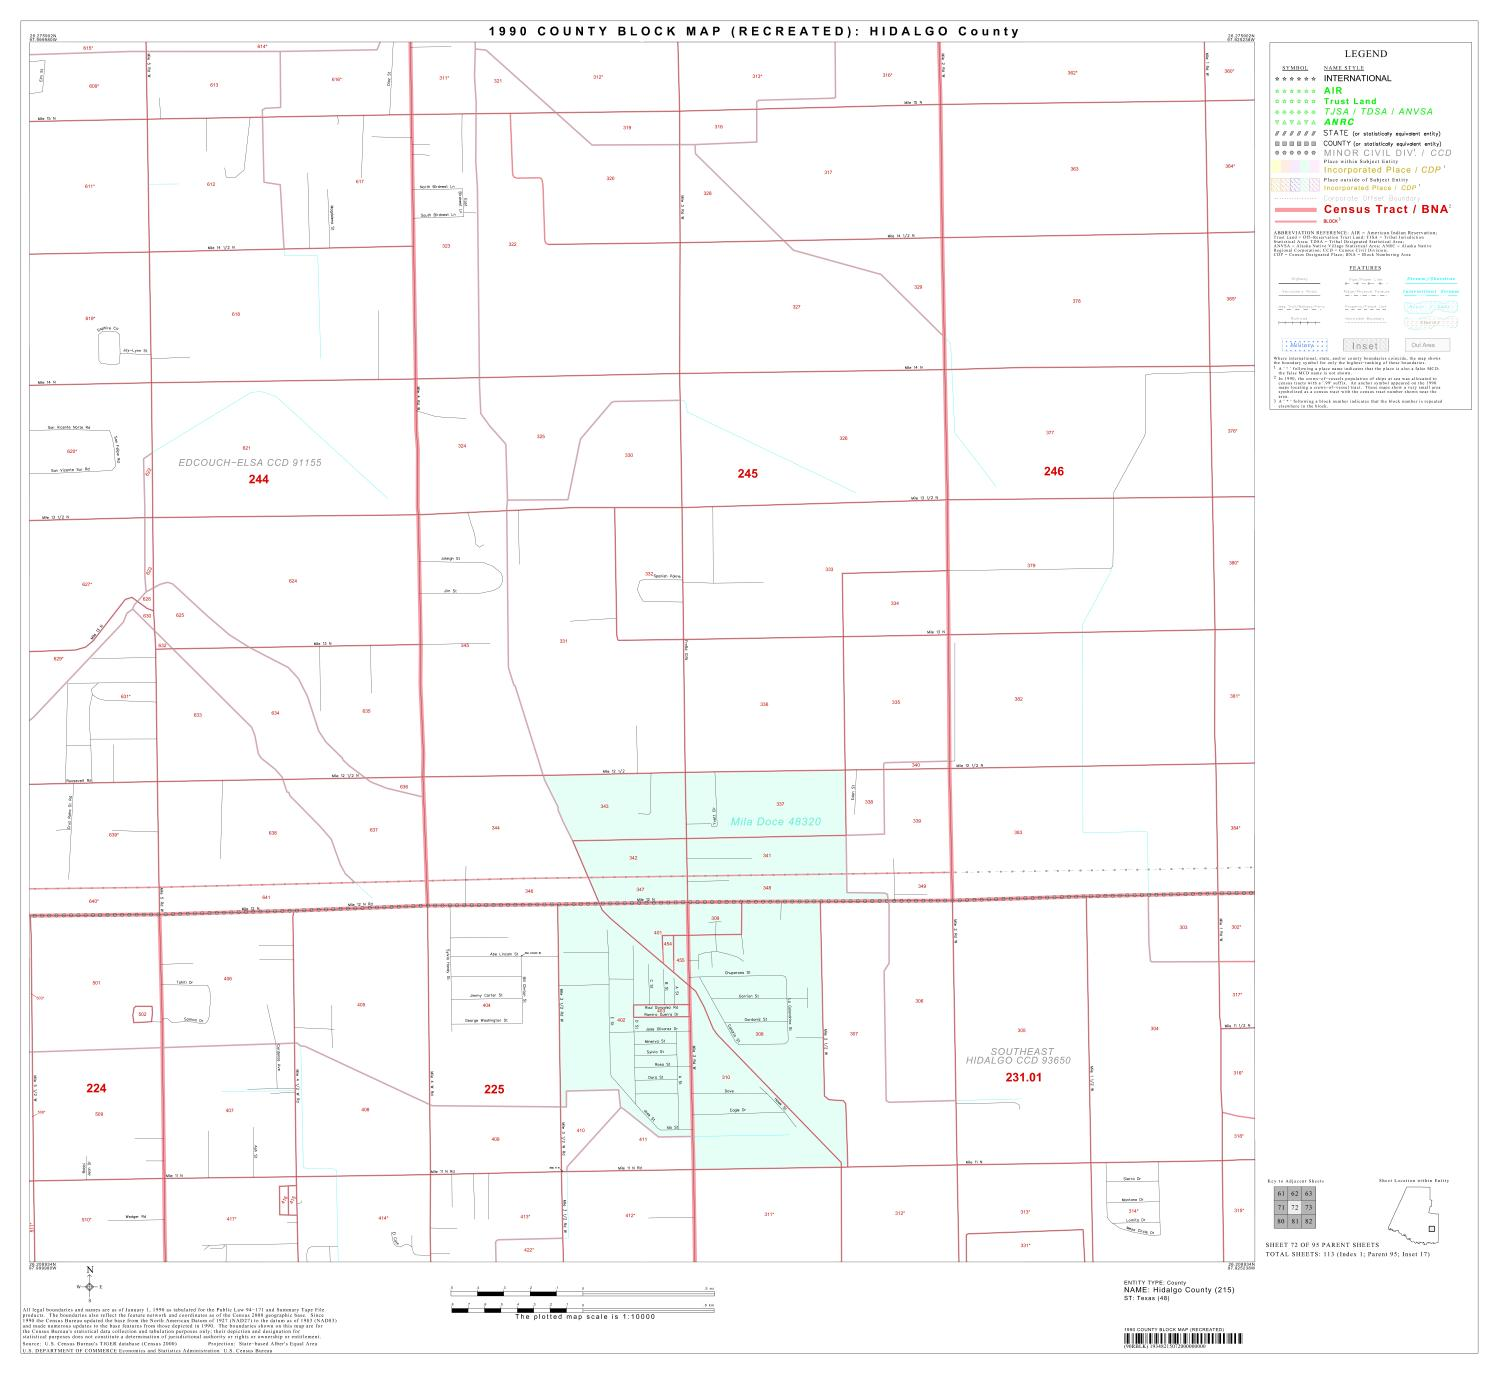 1990 Census County Block Map (Recreated): Hidalgo County, Block 72, Parent map for Hidalgo County, Texas showing the area of one geographic block for which the U.S. Census Bureau collected data. The plotted map scale is 1:10,000.,